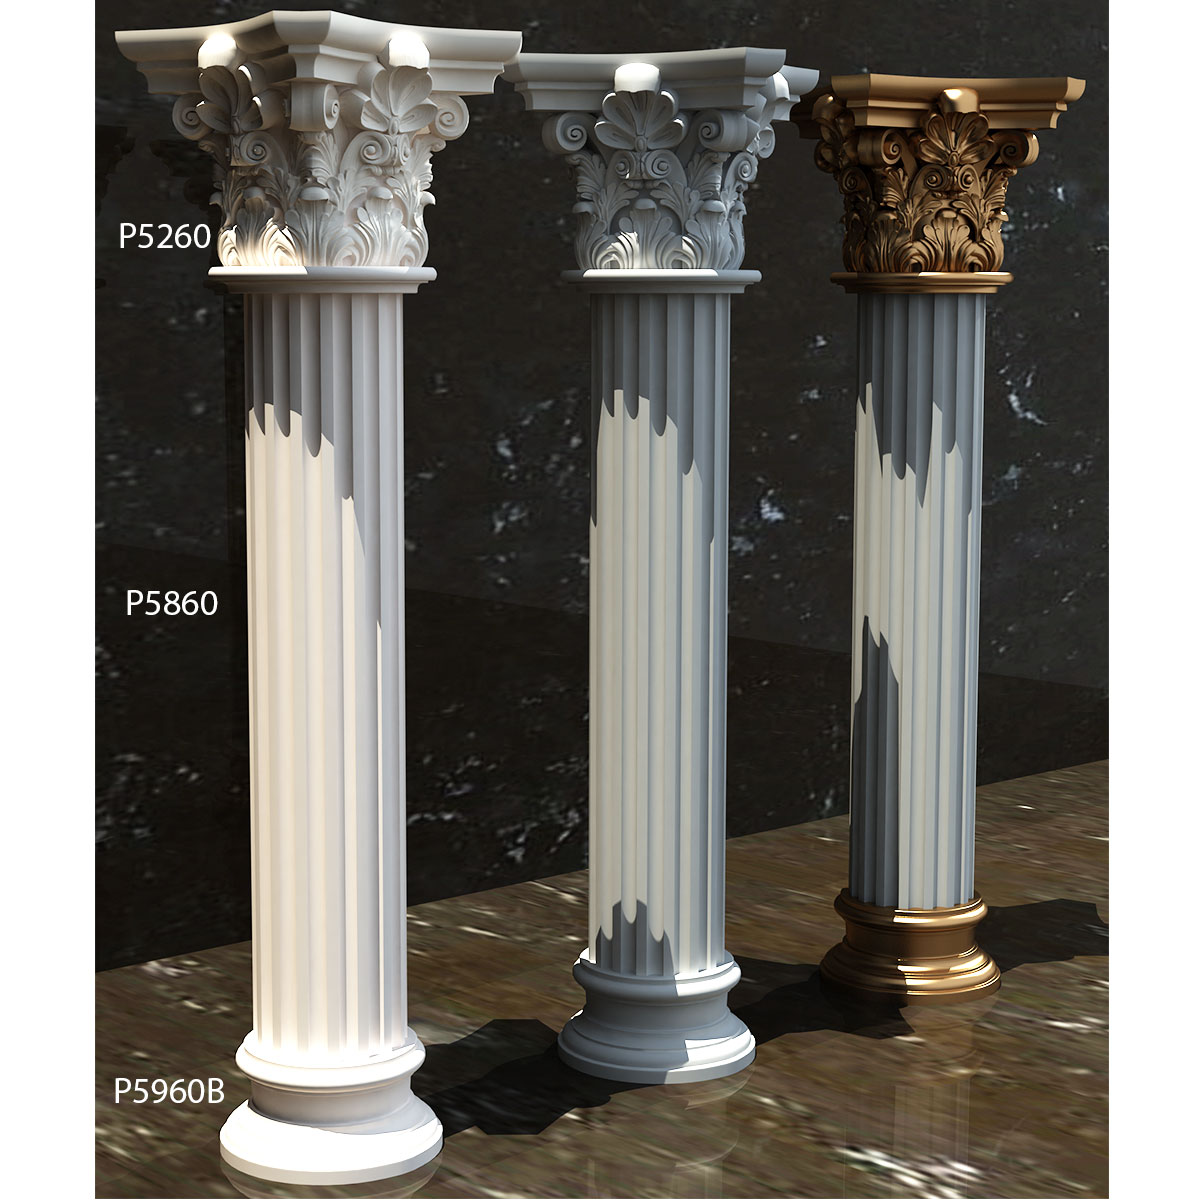 polyurethane-decorative-40-diameter-column-capital-pu-molding-decoration-base-fluted-plain-corinthian-motif-models